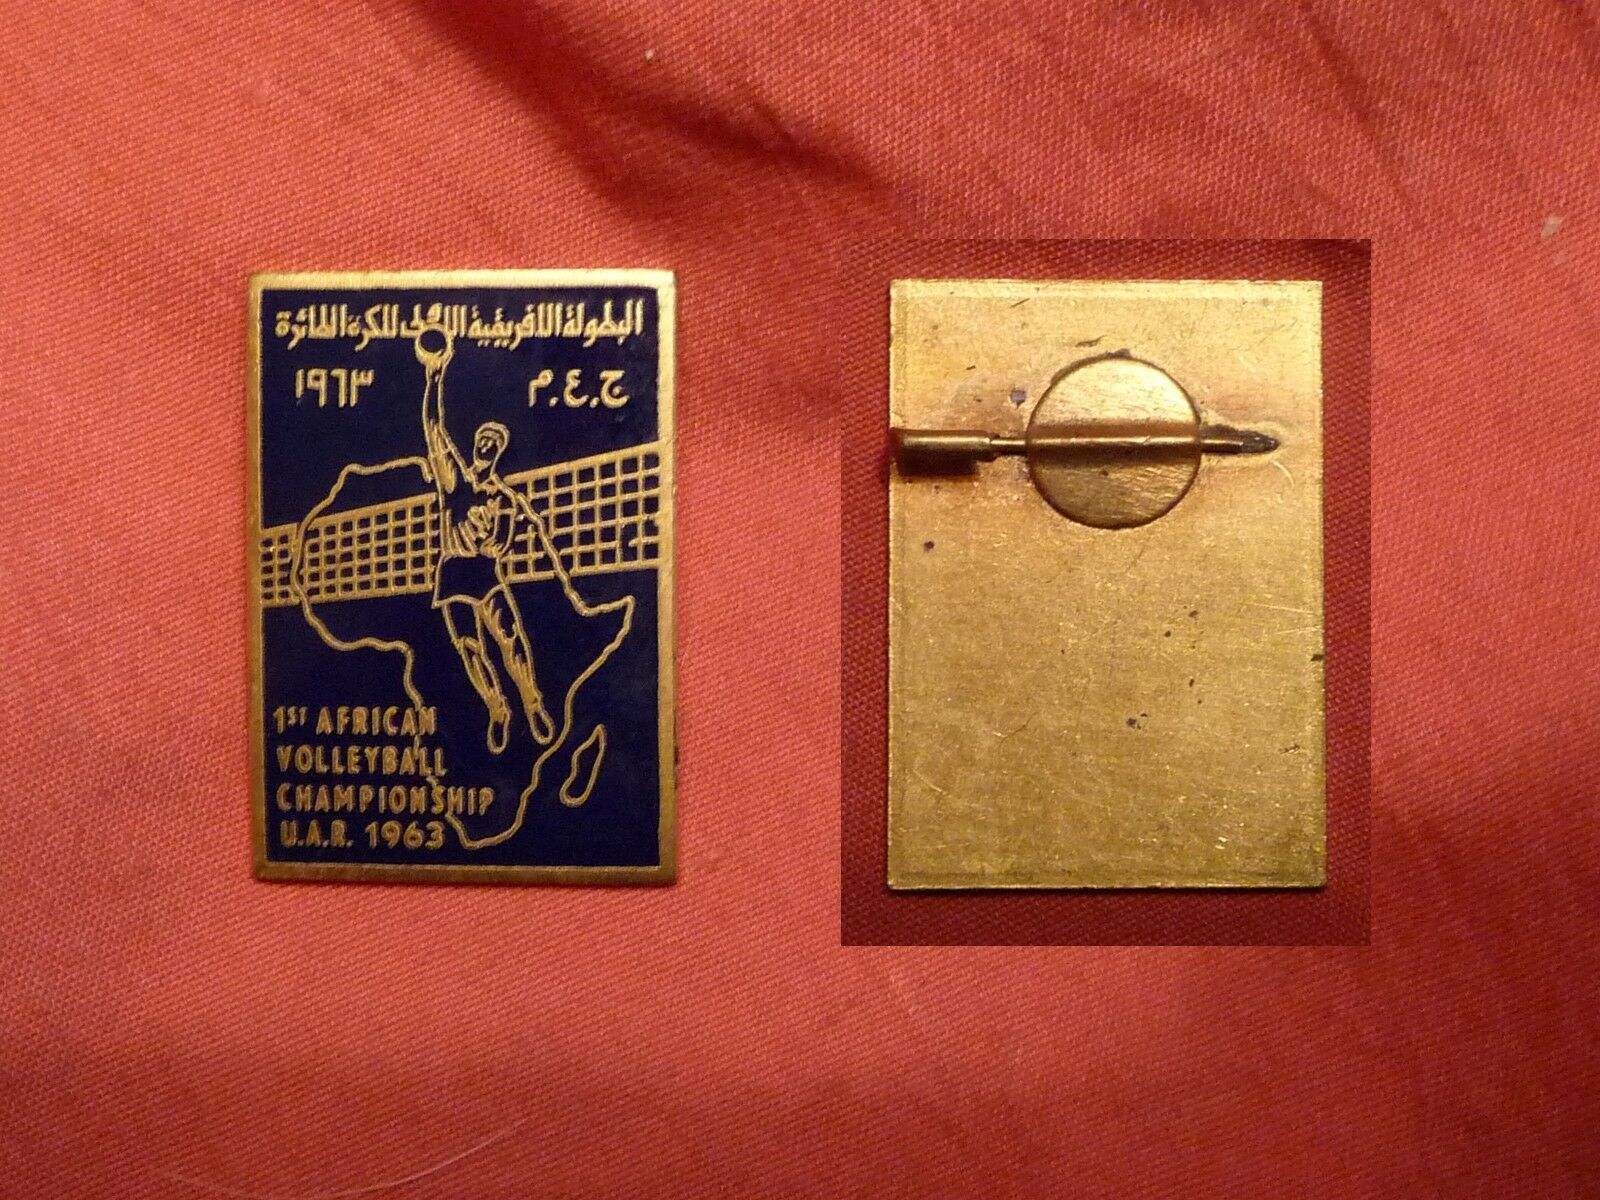 Rare enamelled badge 1st African volleyball championship u.a.r 1963, sport badge